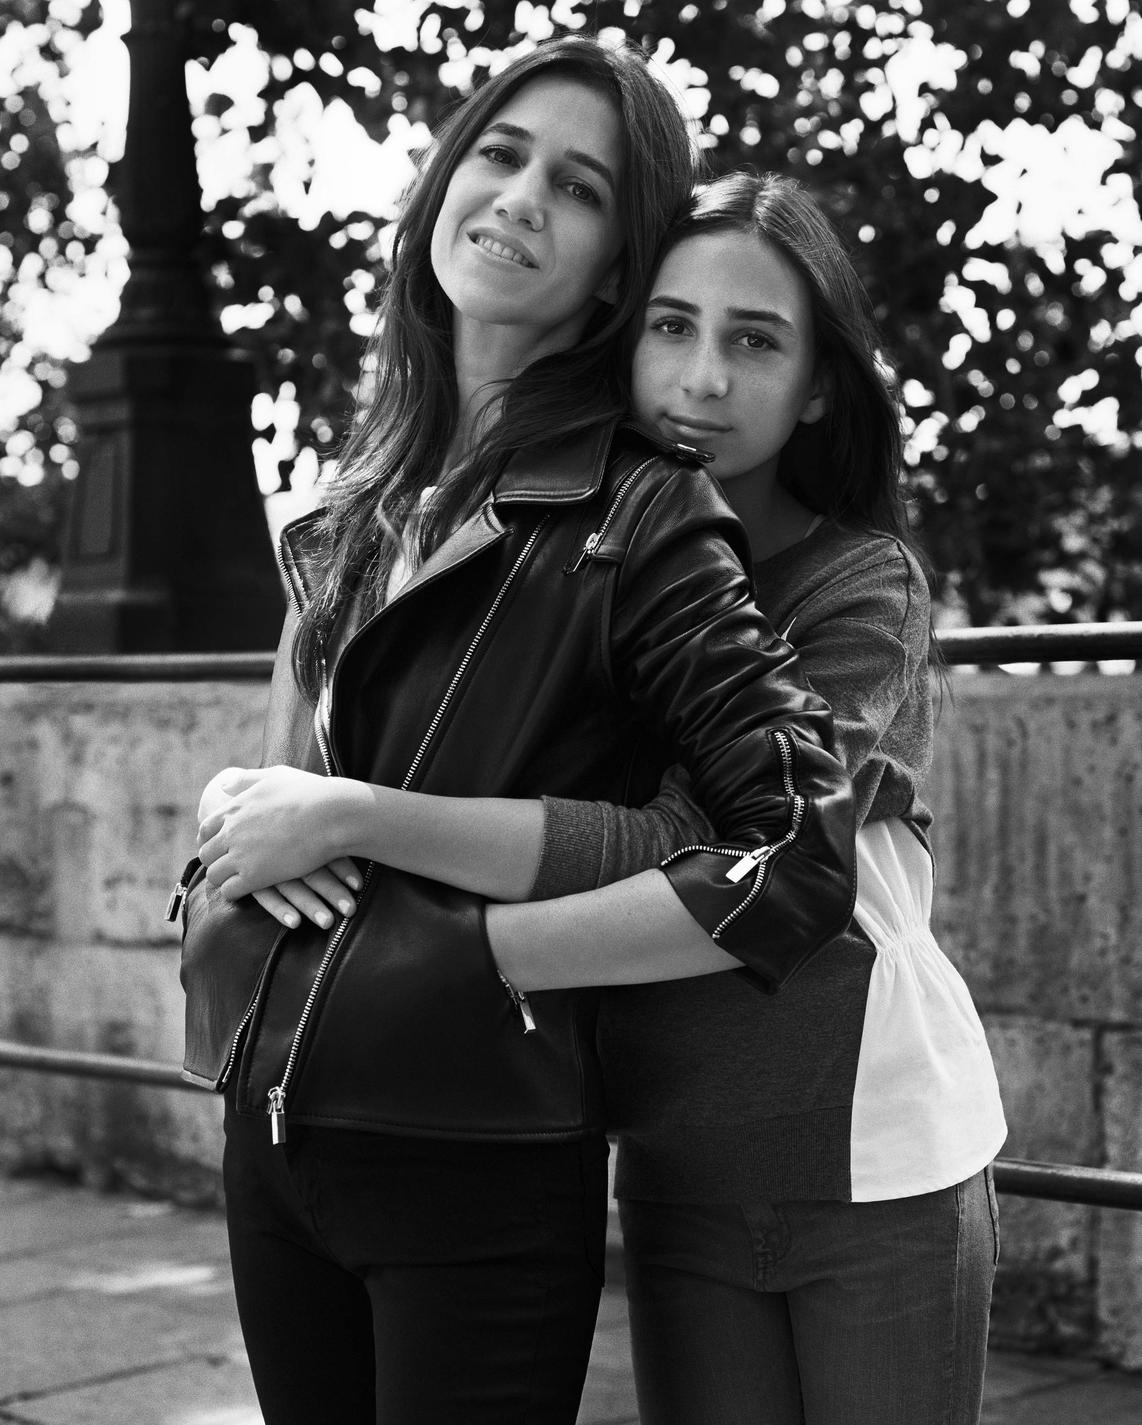 photos charlotte gainsbourg et sa fille alice attal pour comptoir des cotonniers taaora. Black Bedroom Furniture Sets. Home Design Ideas